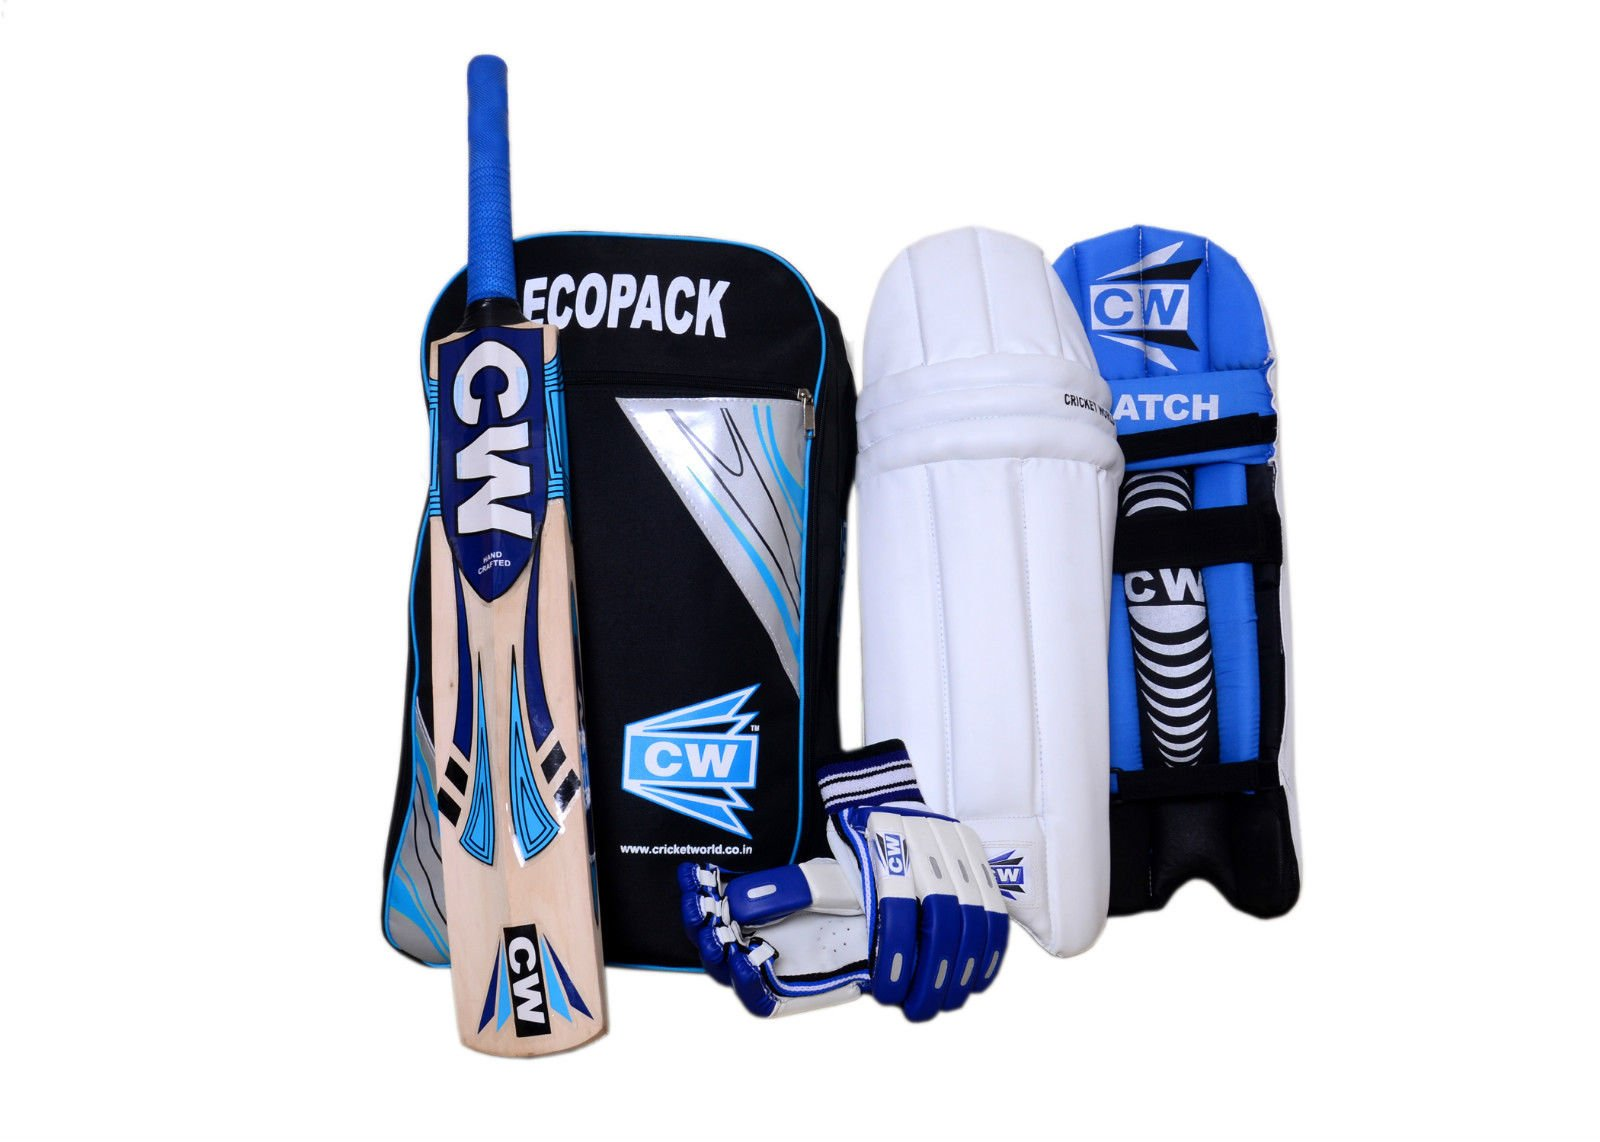 CW Sports Teenagers Cricket Kit Blue Size No.6 Ideal for 11 -12 Year Child Cricket Players ,Best Quality Top Grade Cricket Kit Set with Kashmir willow Bat ,Thigh Guard Pair,Batting Gloves ,Kit Bag